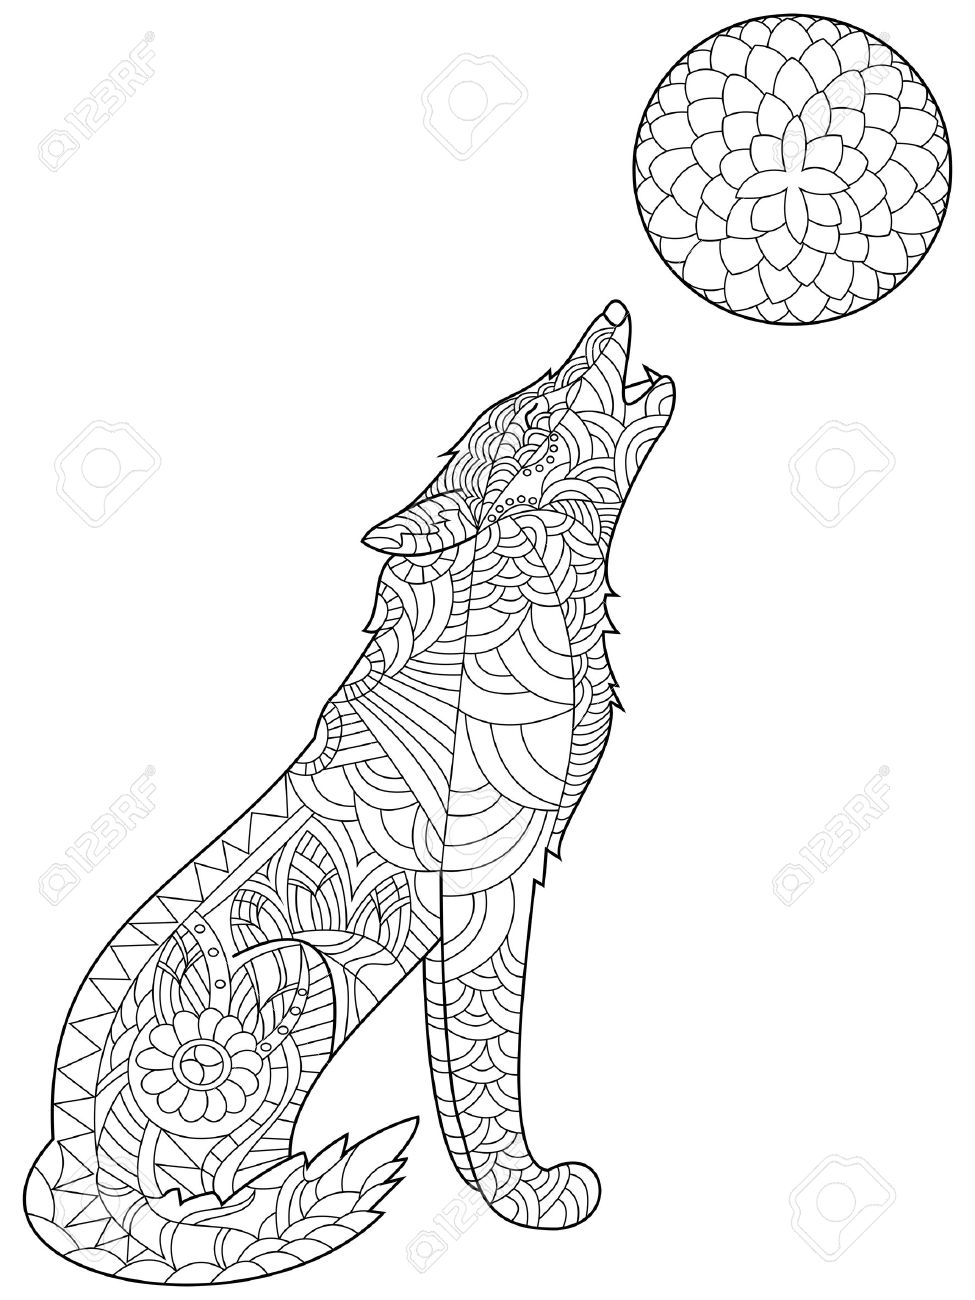 - Wolf Coloring Book For Adults Vector Illustration. Anti-stress